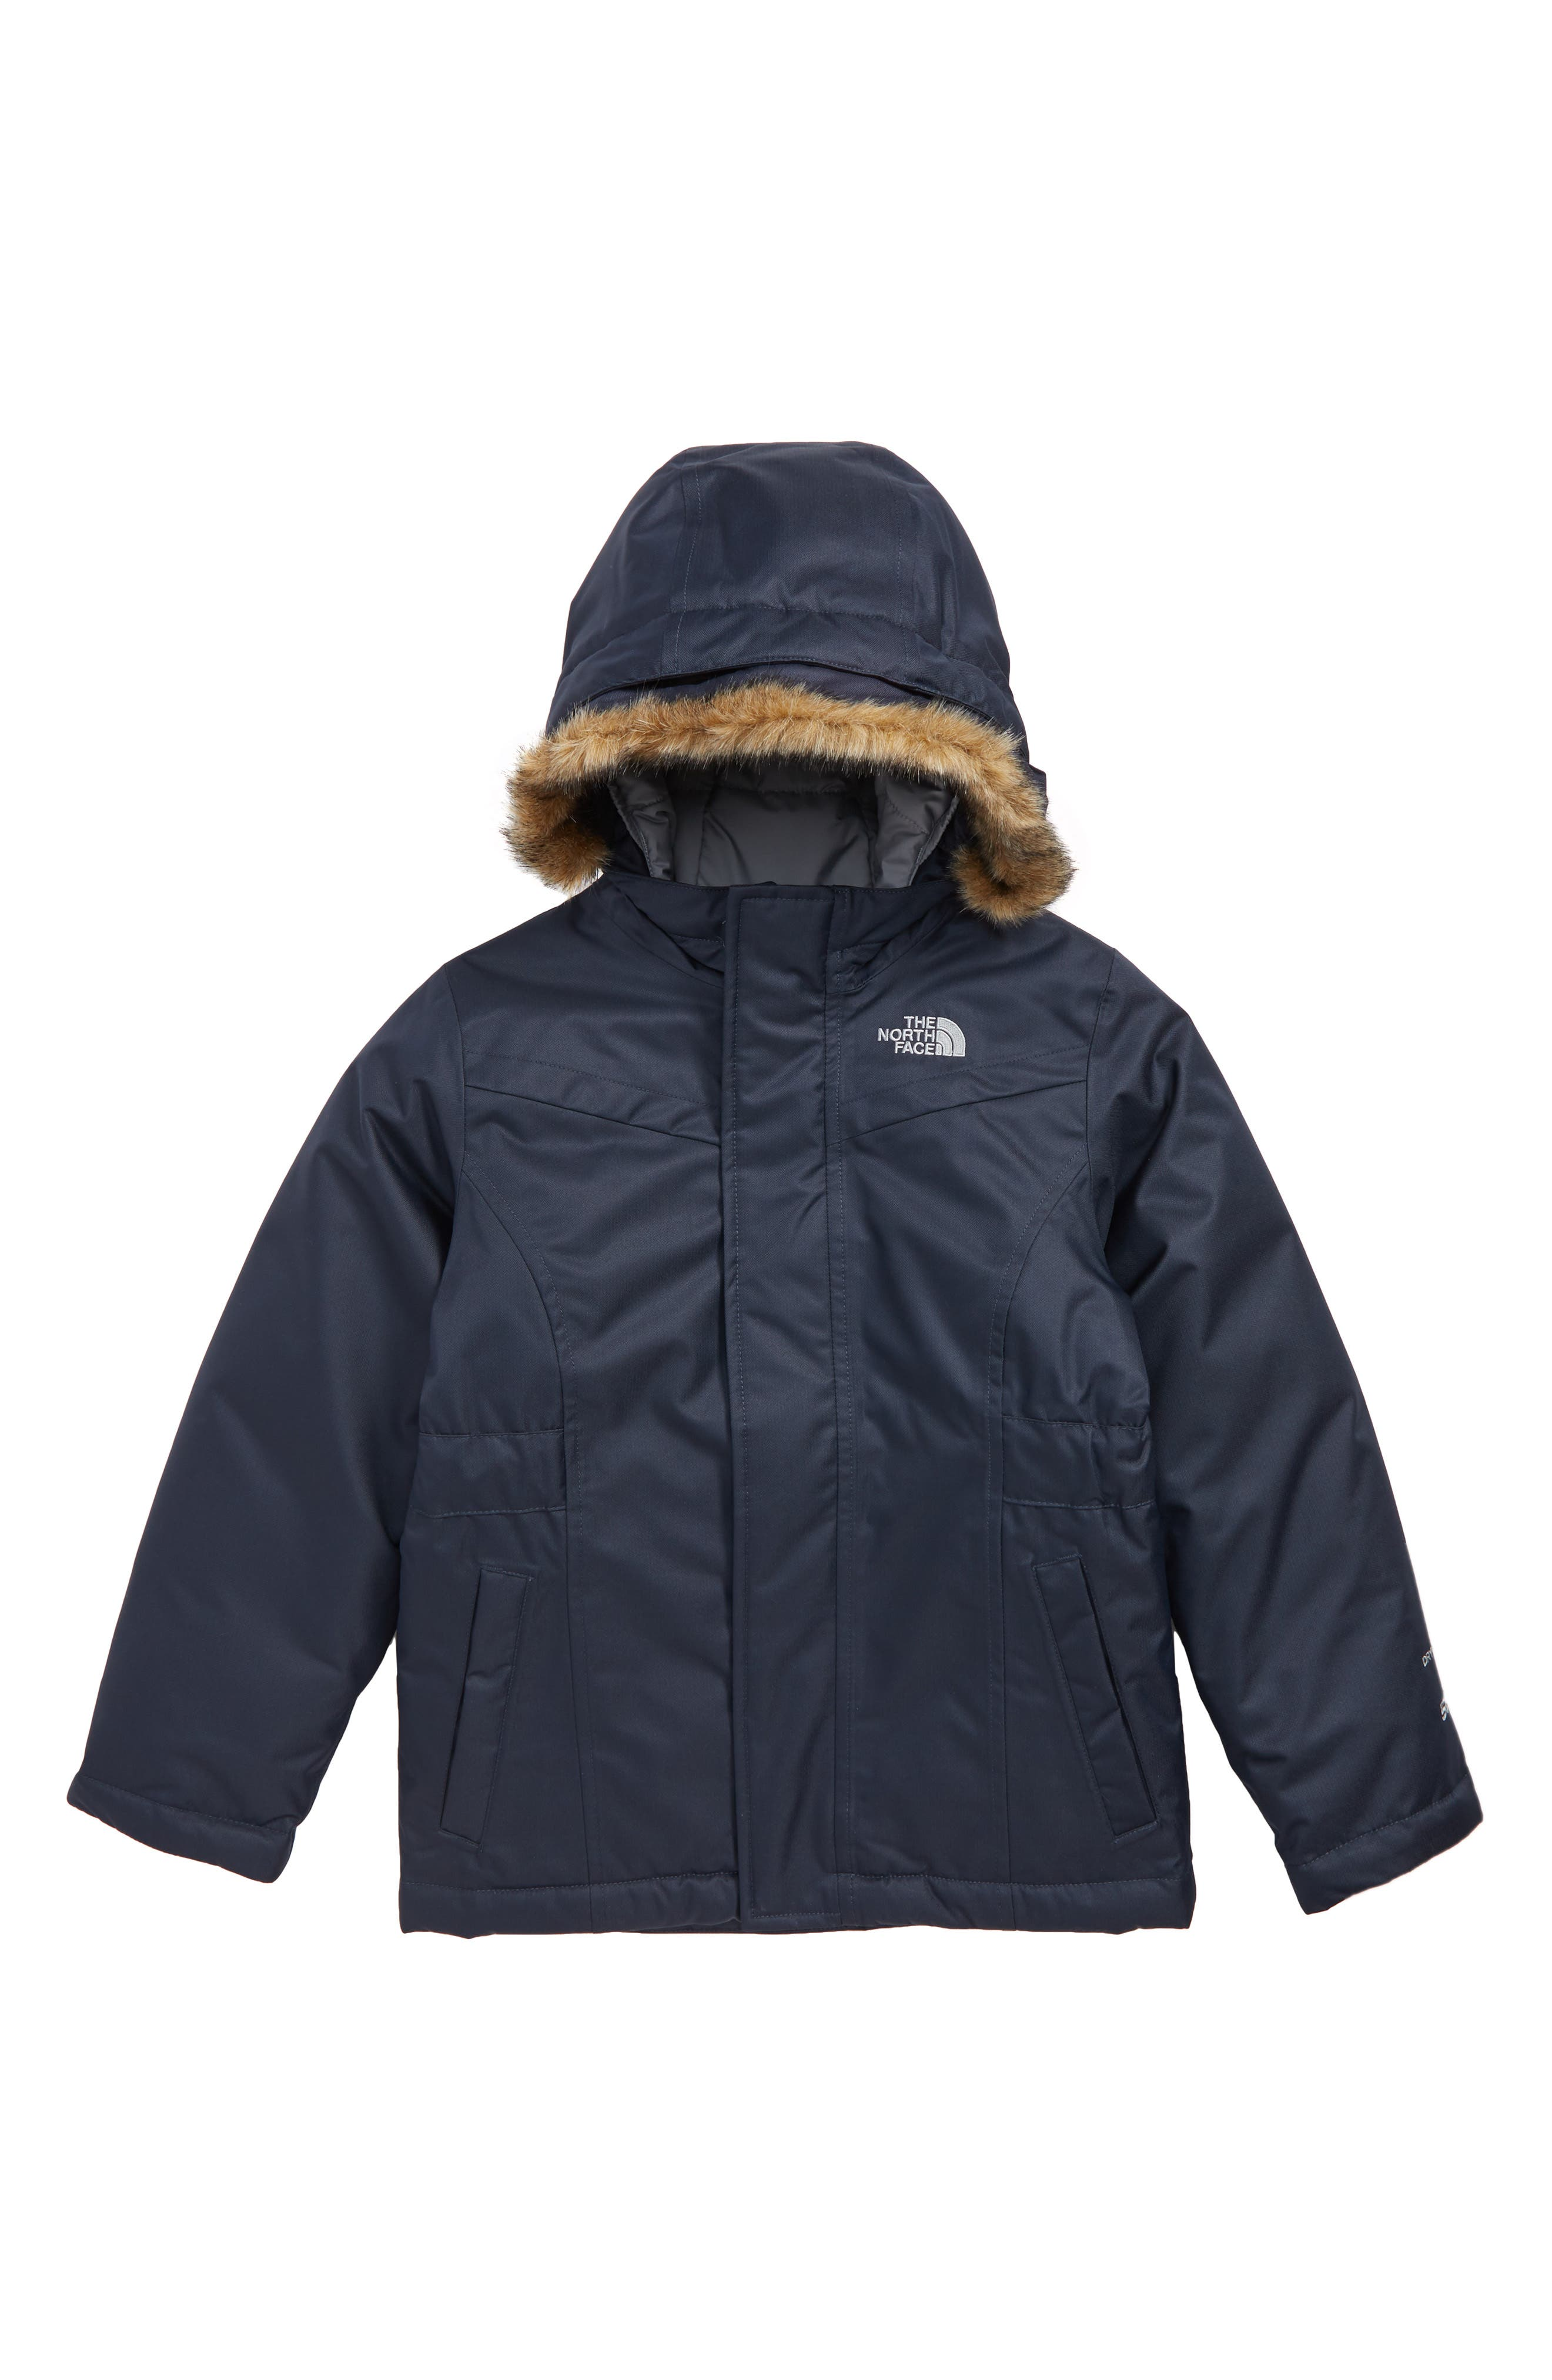 Greenland Waterproof 550-Fill-Power Down Jacket with Faux Fur Trim, Main, color, URBAN NAVY